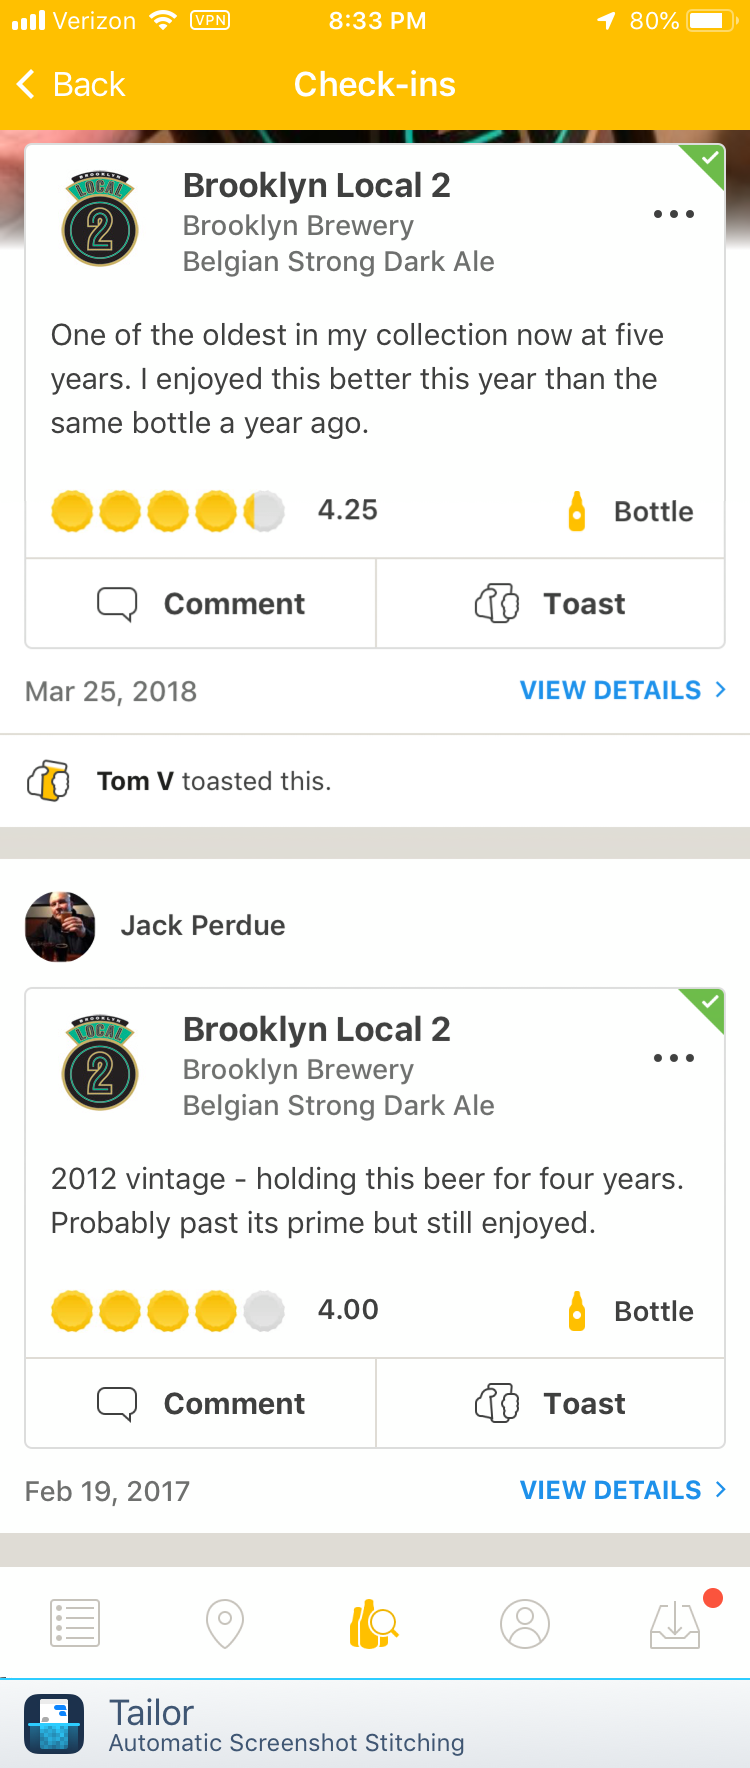 Tasting notes - As you drink beers in your Cellar List you can make notes on how the beer tasted and how well it developed during it's cellaring time.